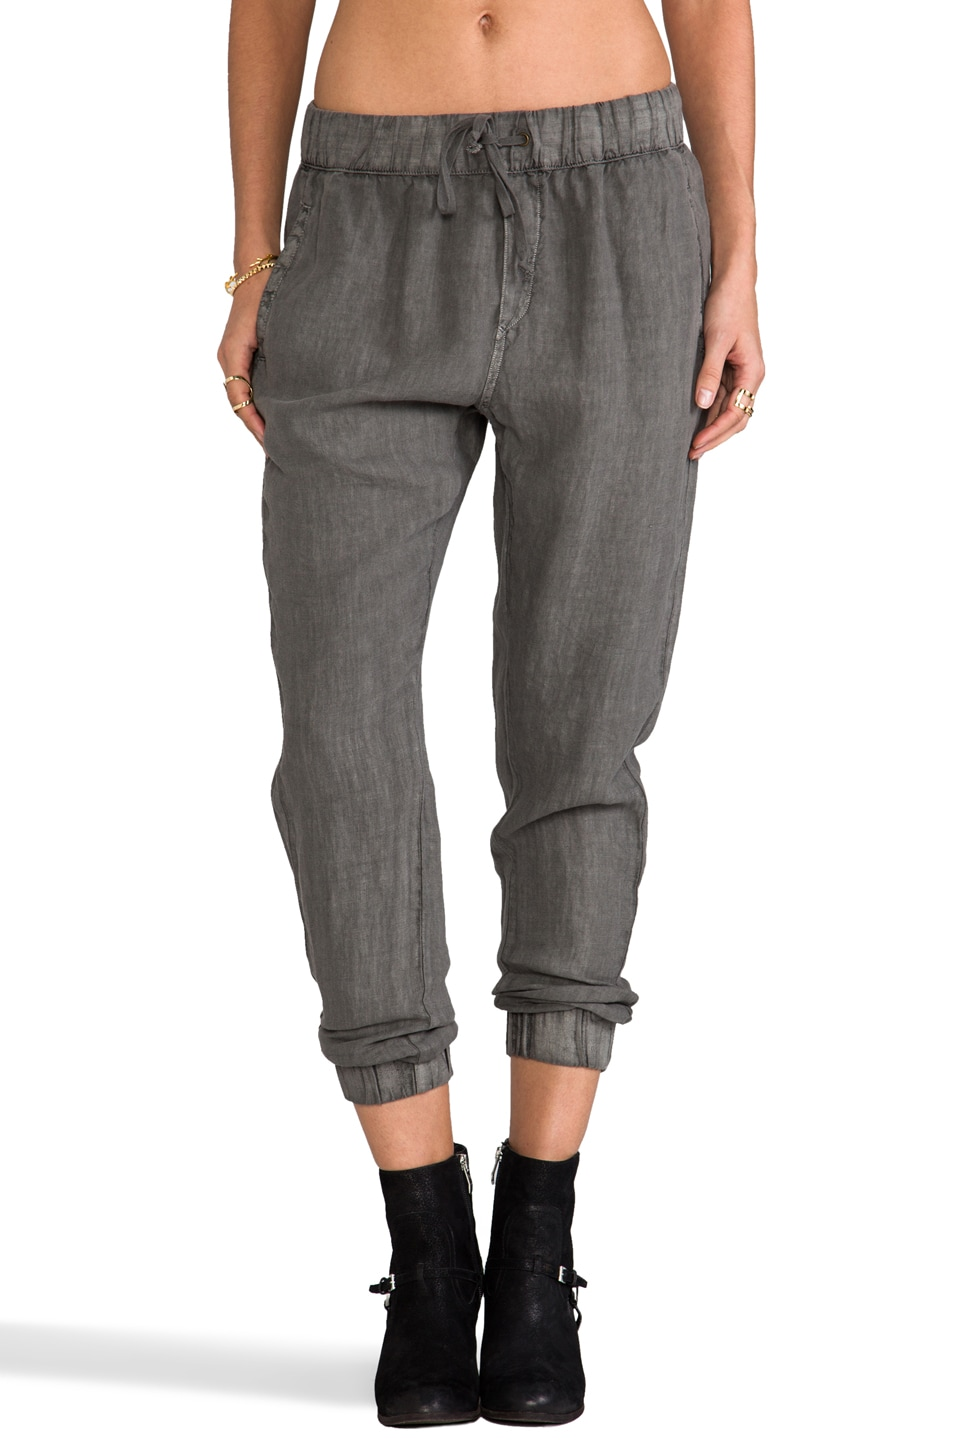 Enza Costa French Linen Lounge Pant in Carbon